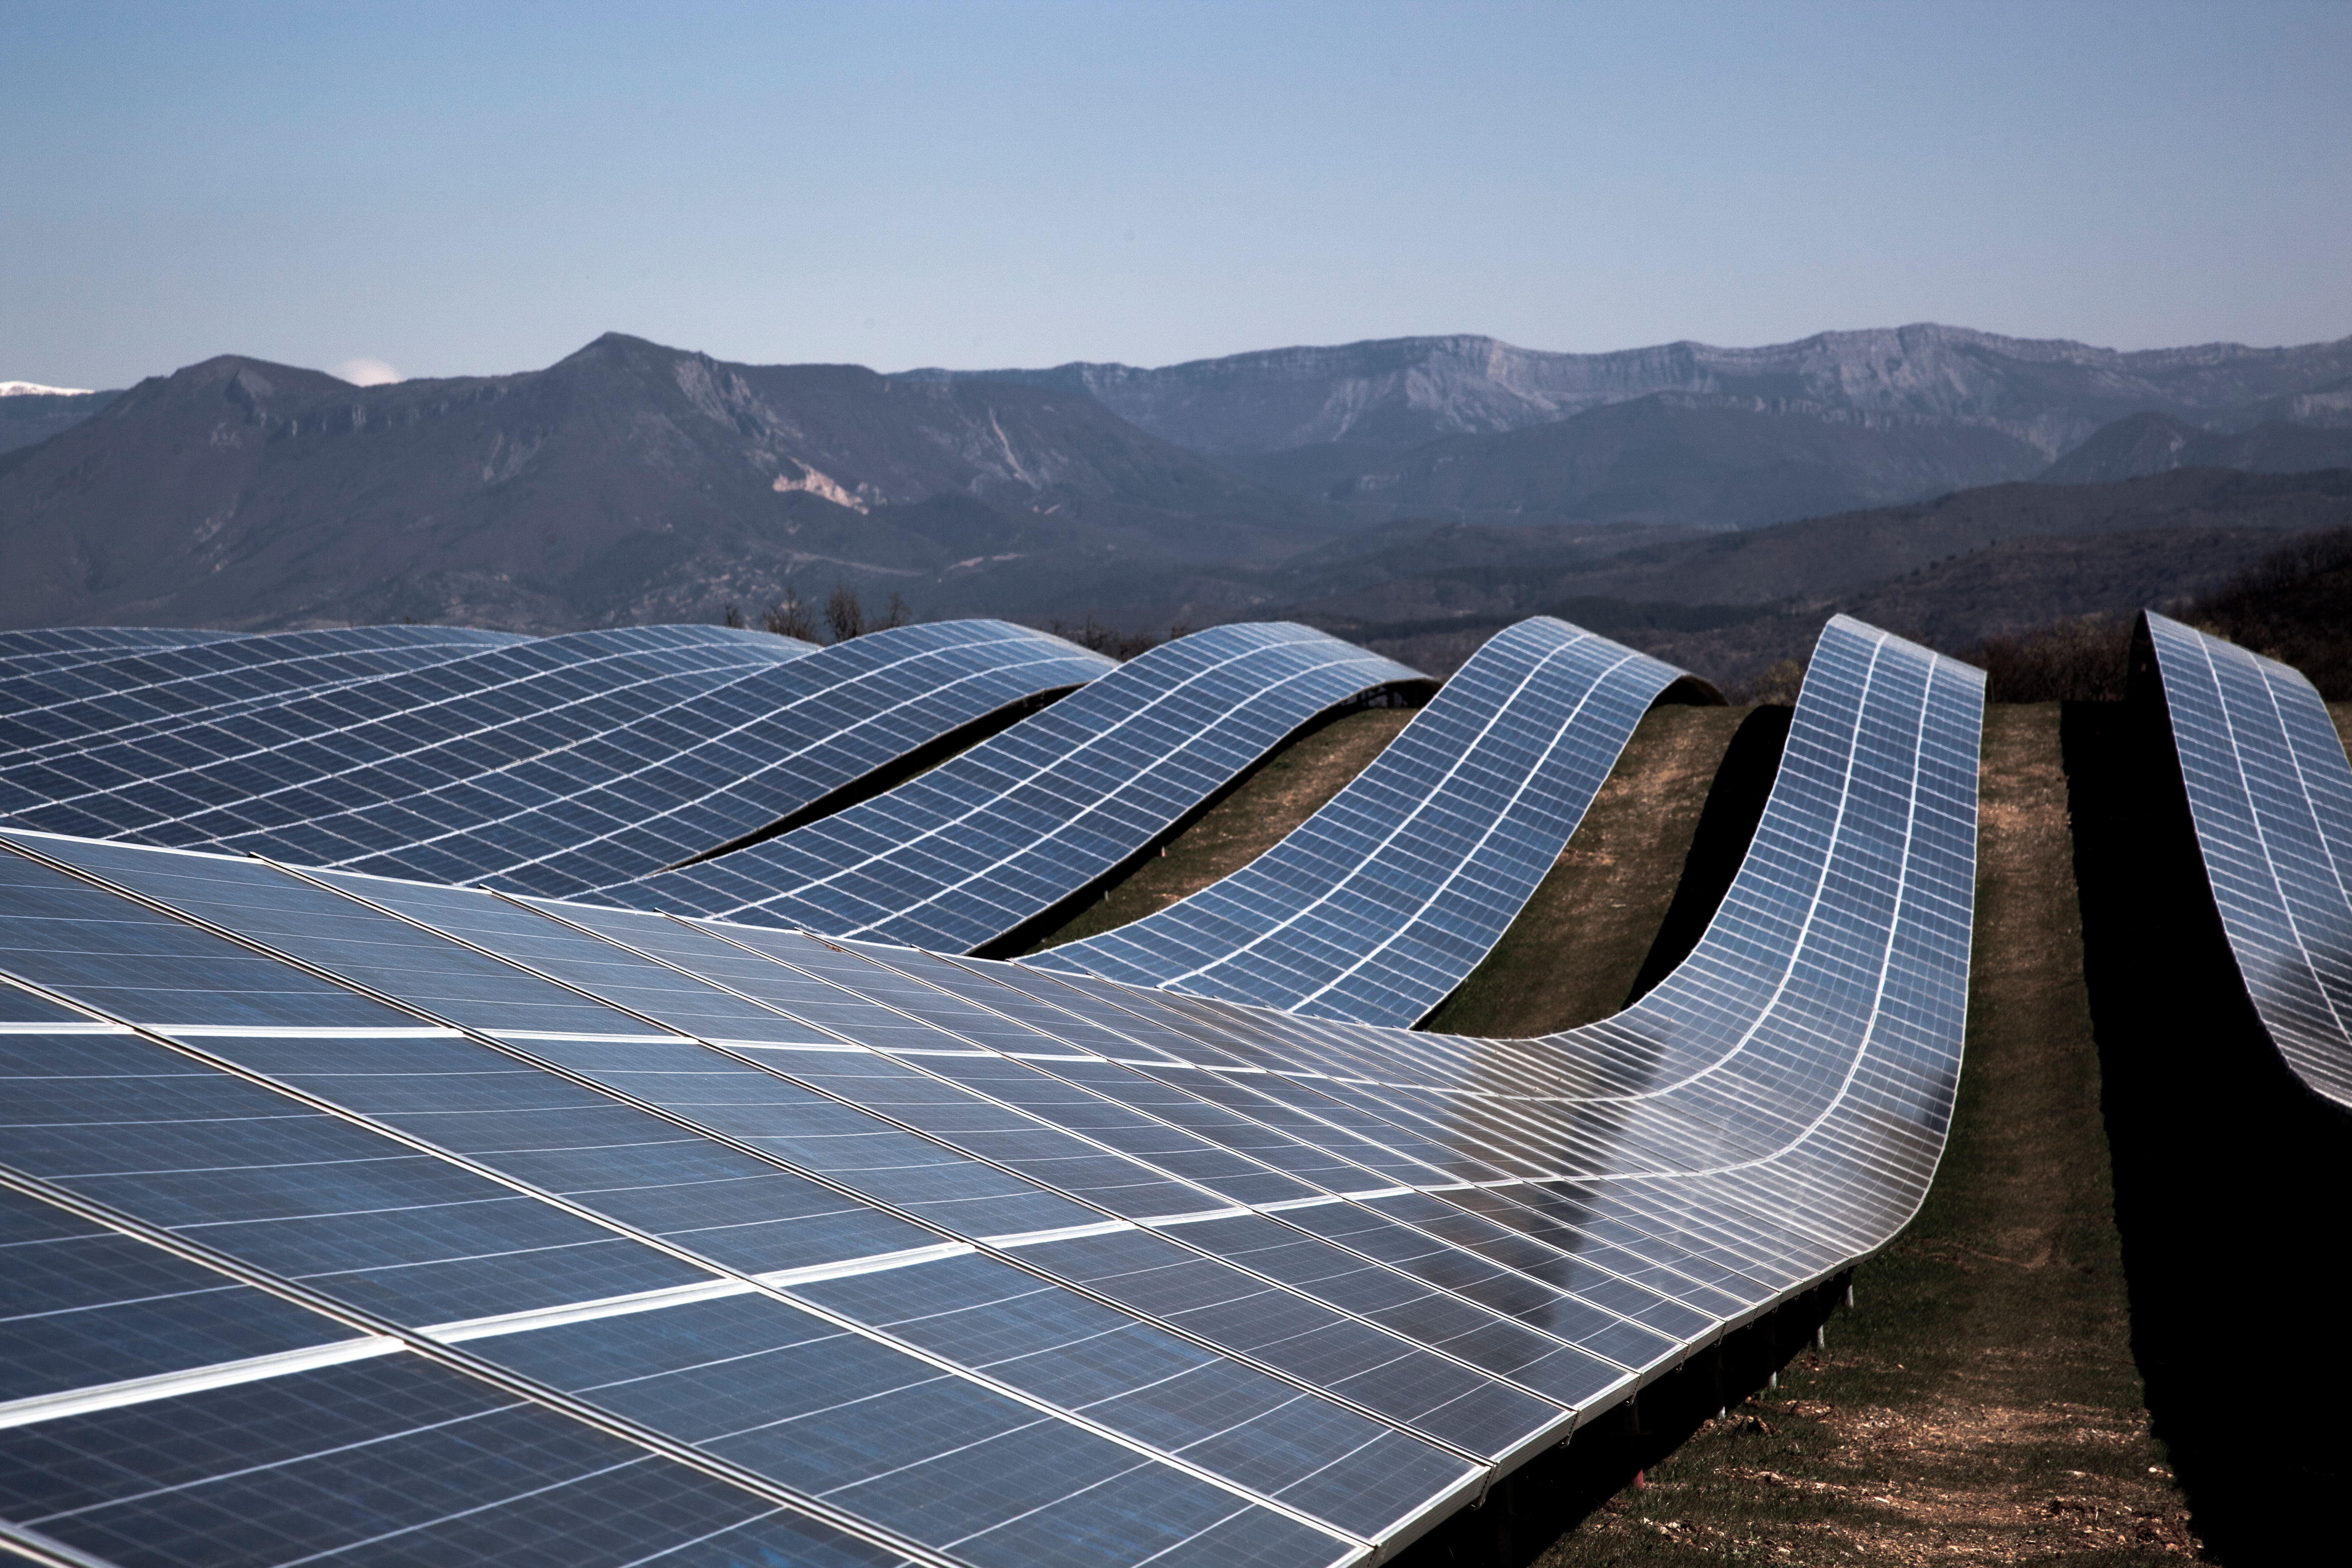 Planning extremely cost-effective solar parks